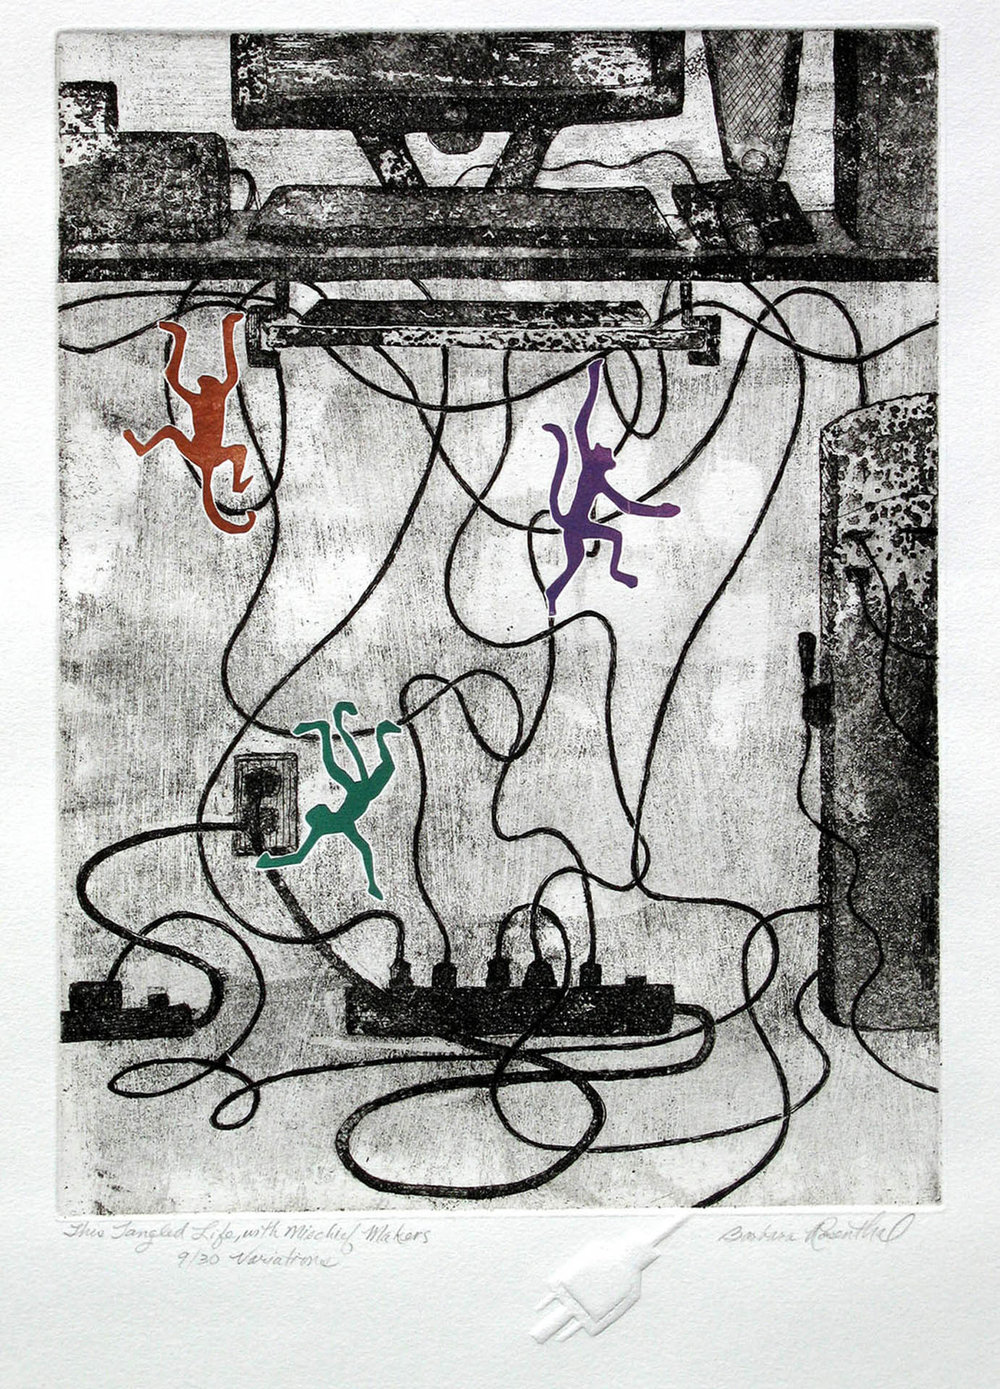 10 Barbara Rosenthal_This Tangled Life, with Mischief.jpg